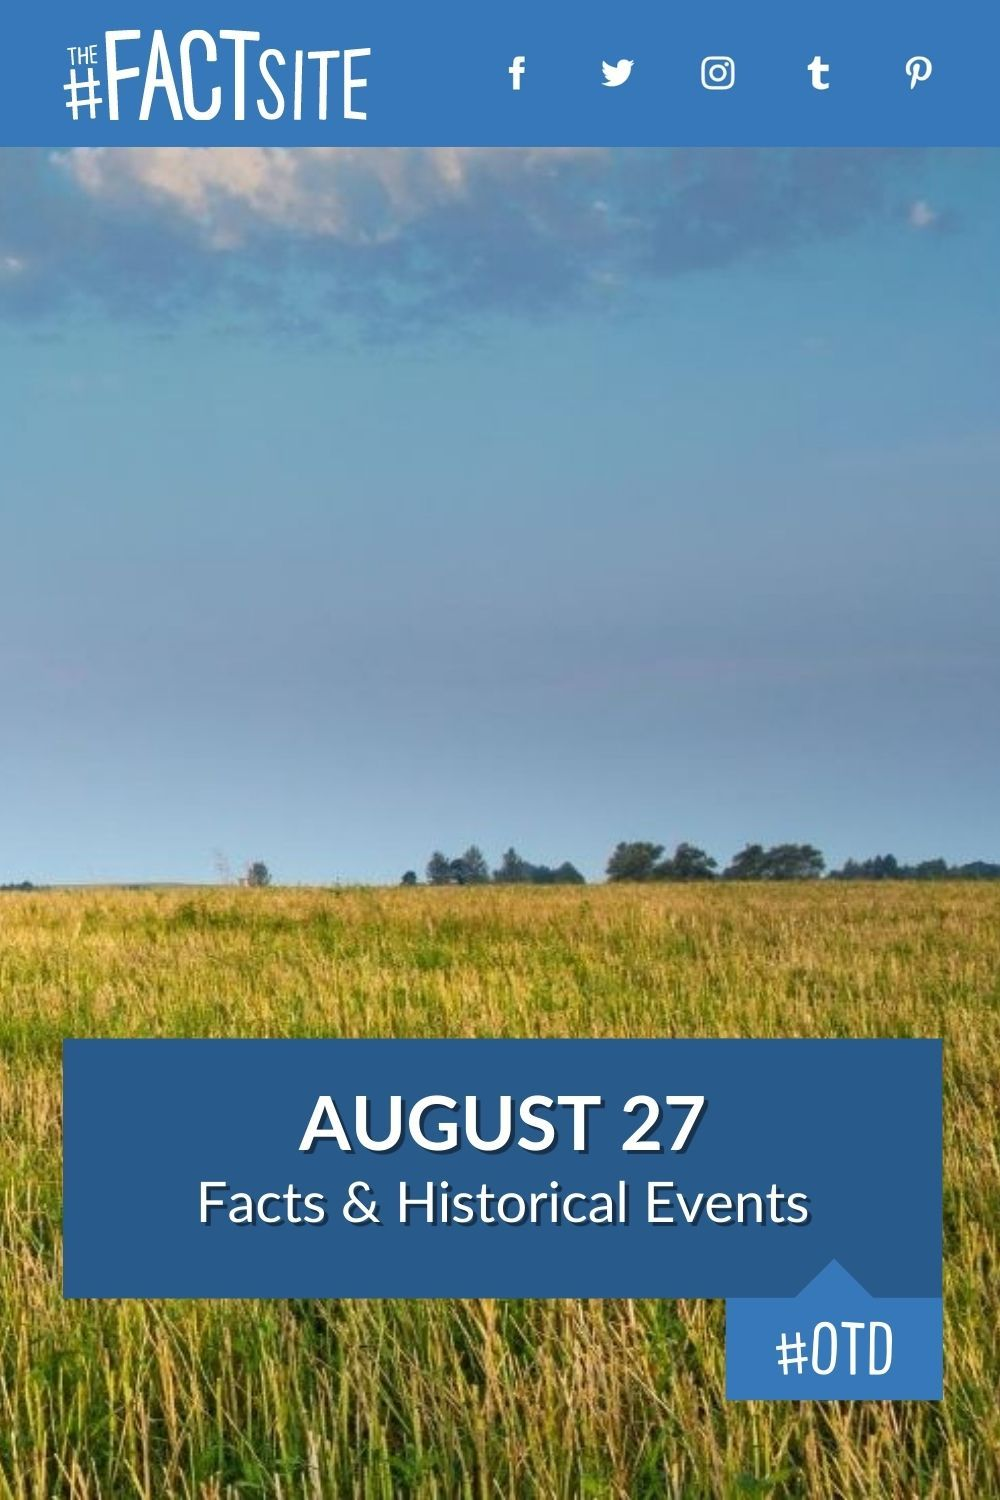 Facts & Historic Events That Happened on August 27